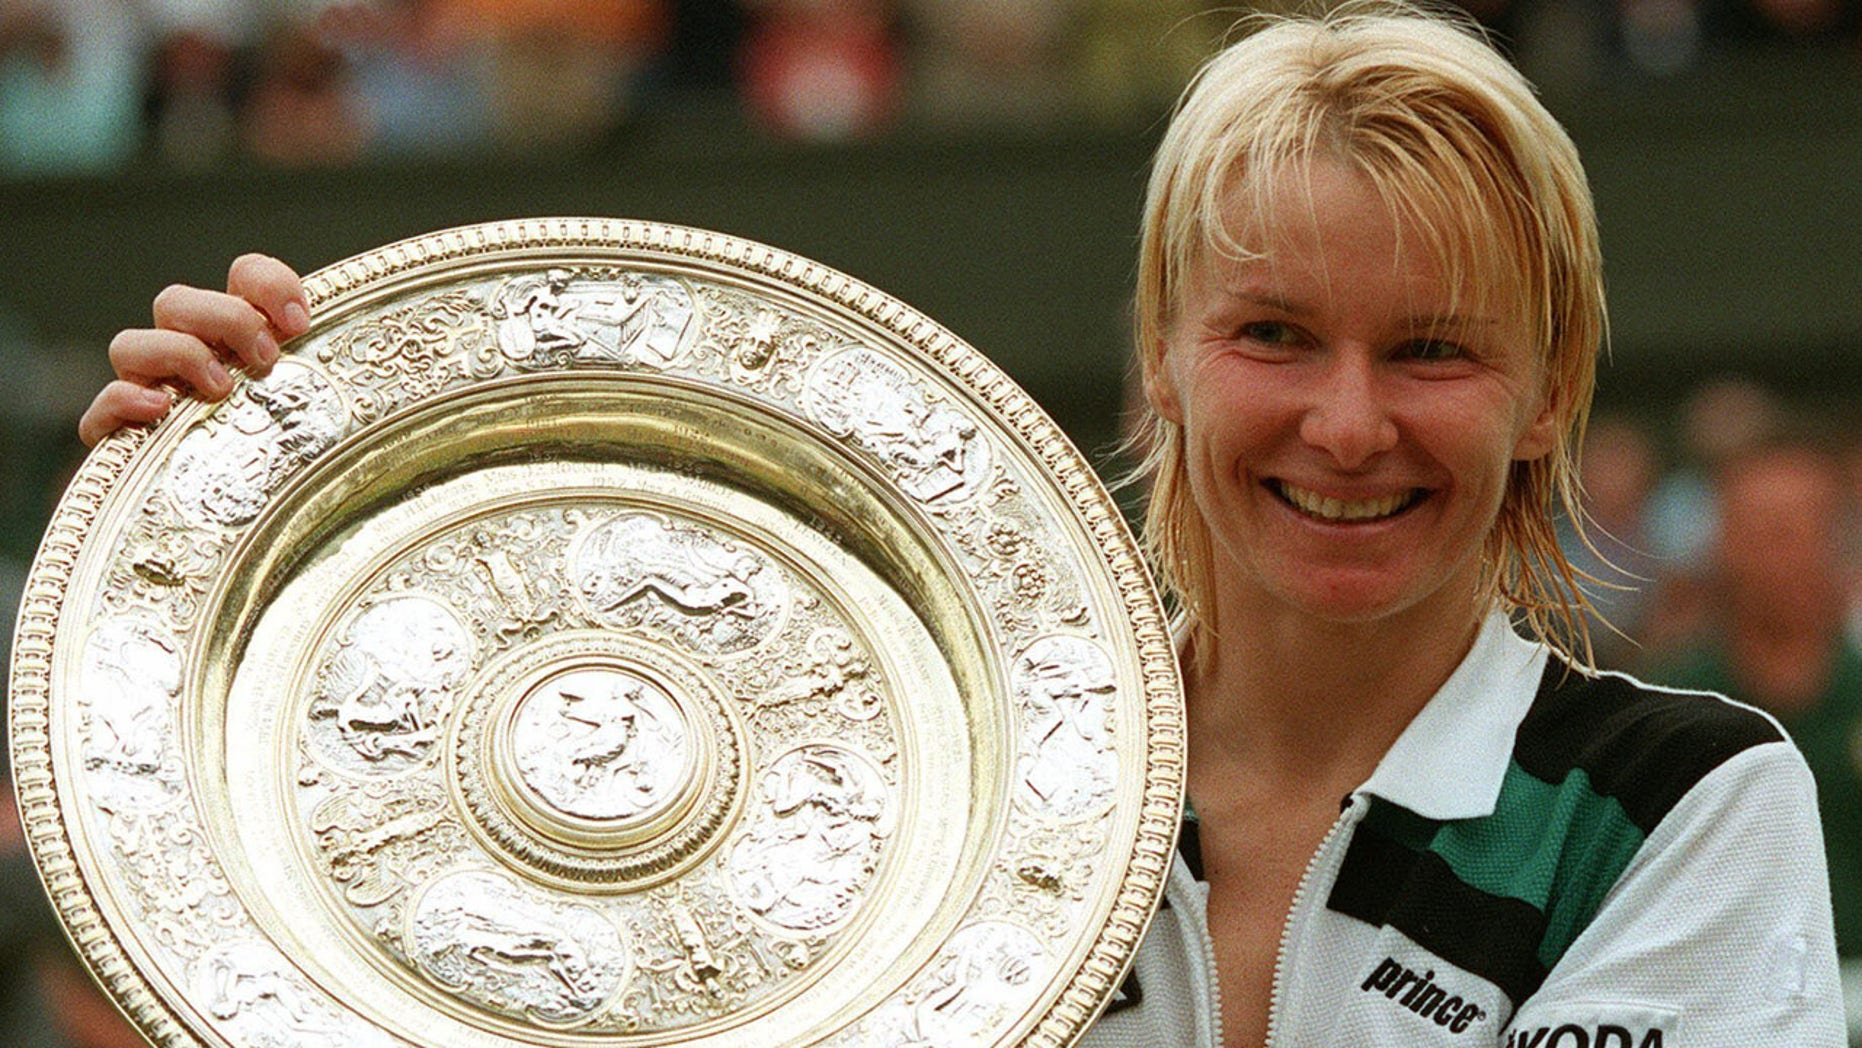 July 4, 1998 file photo, Jana Novotna, of the Czech Republic, displays the women's singles trophy after her victory over France's Nathalie Tauziat in the final on Wimbledon's Centre Court.